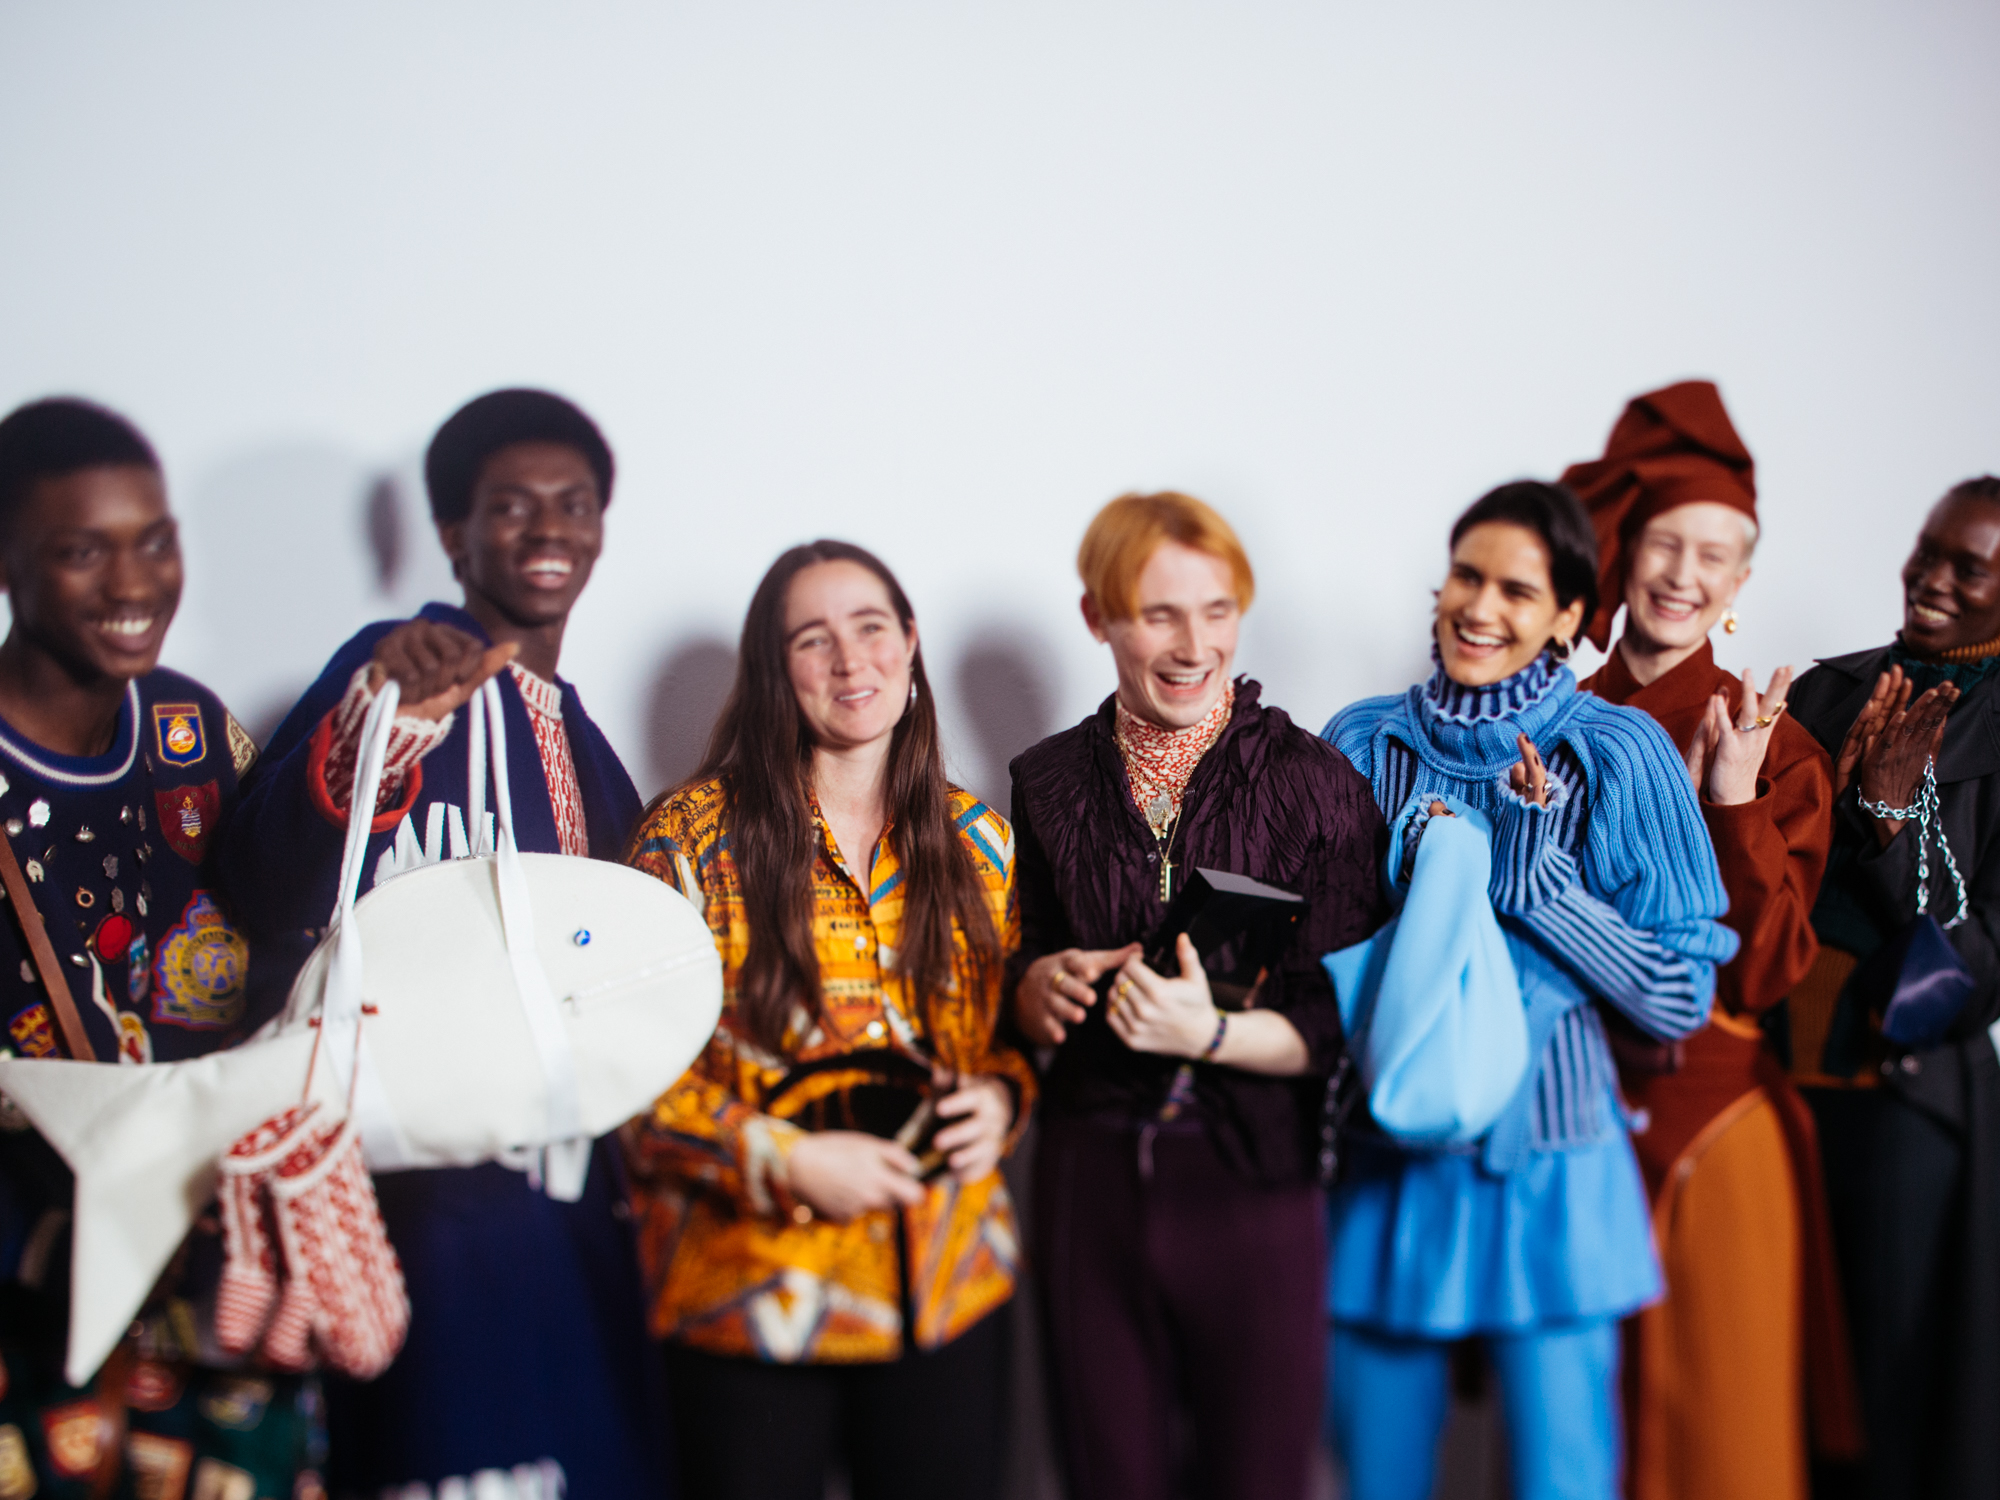 Winners of the International Woolmark Prize, Emily Bode and Richard Malone with models